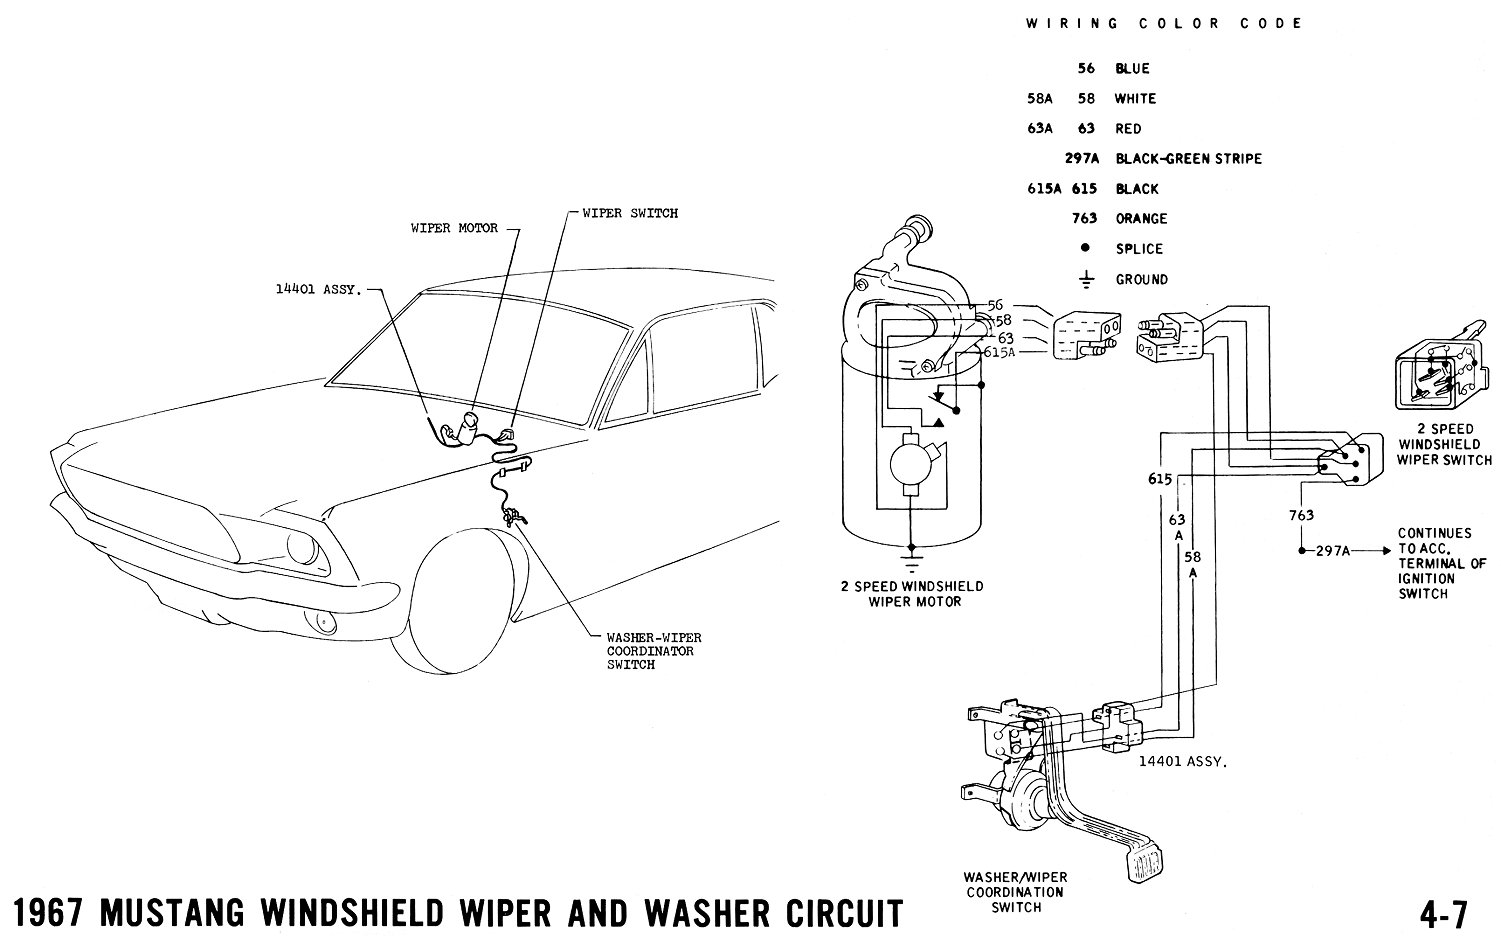 Ford Mustang Windshield Wiper Wiring Diagram | Wiring Diagram on